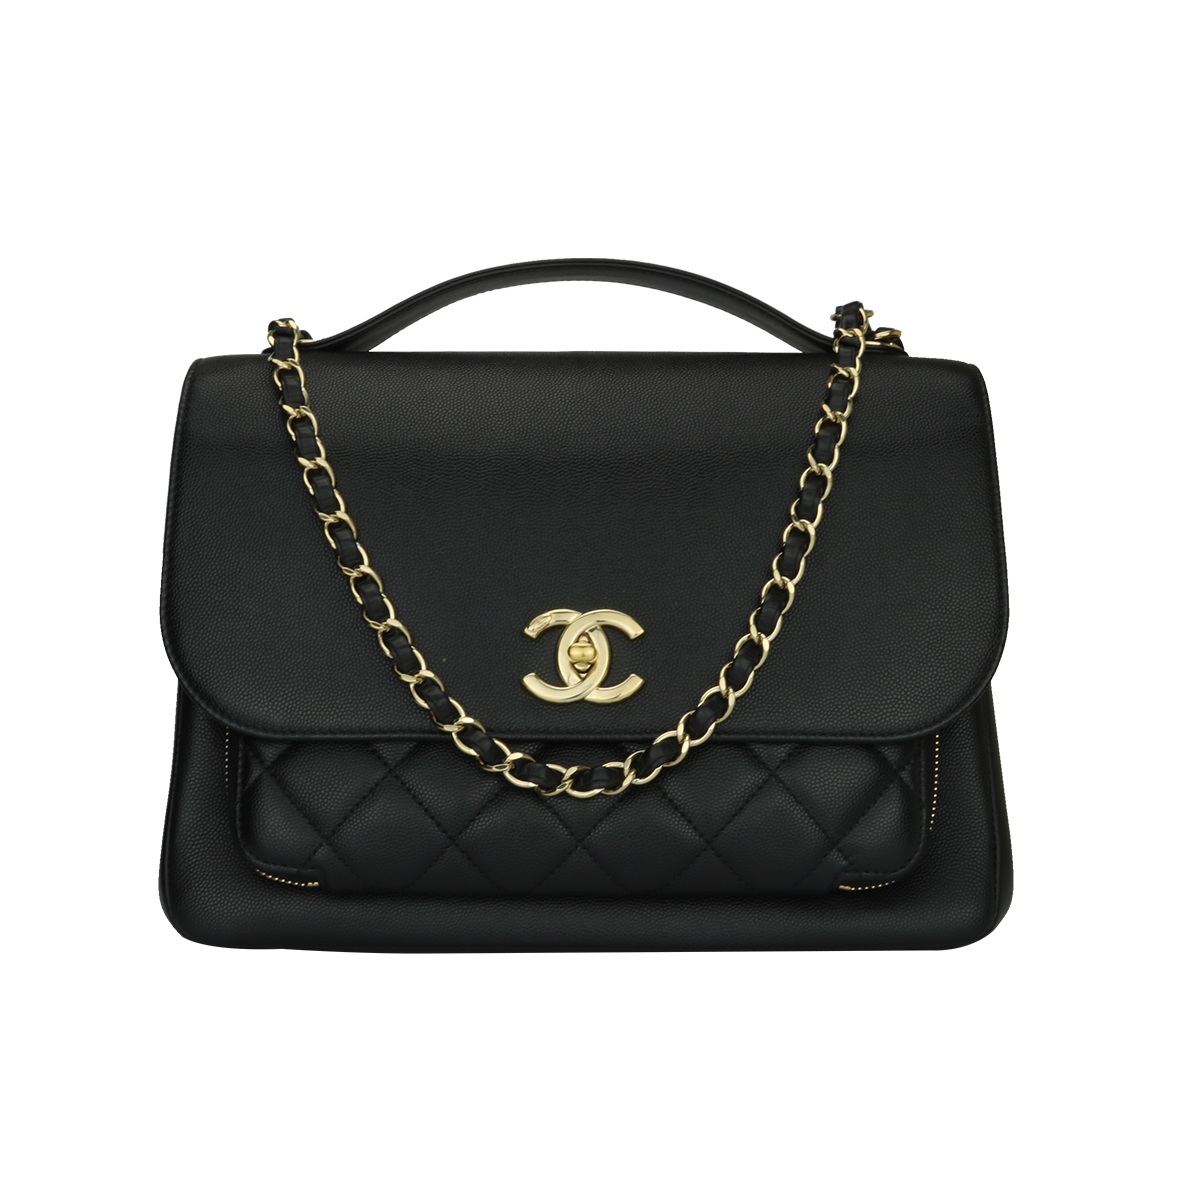 1a23502a1c47 Home Chanel CHANEL Business Affinity Large Black Caviar Calf Champagne  Hardware 2017.   